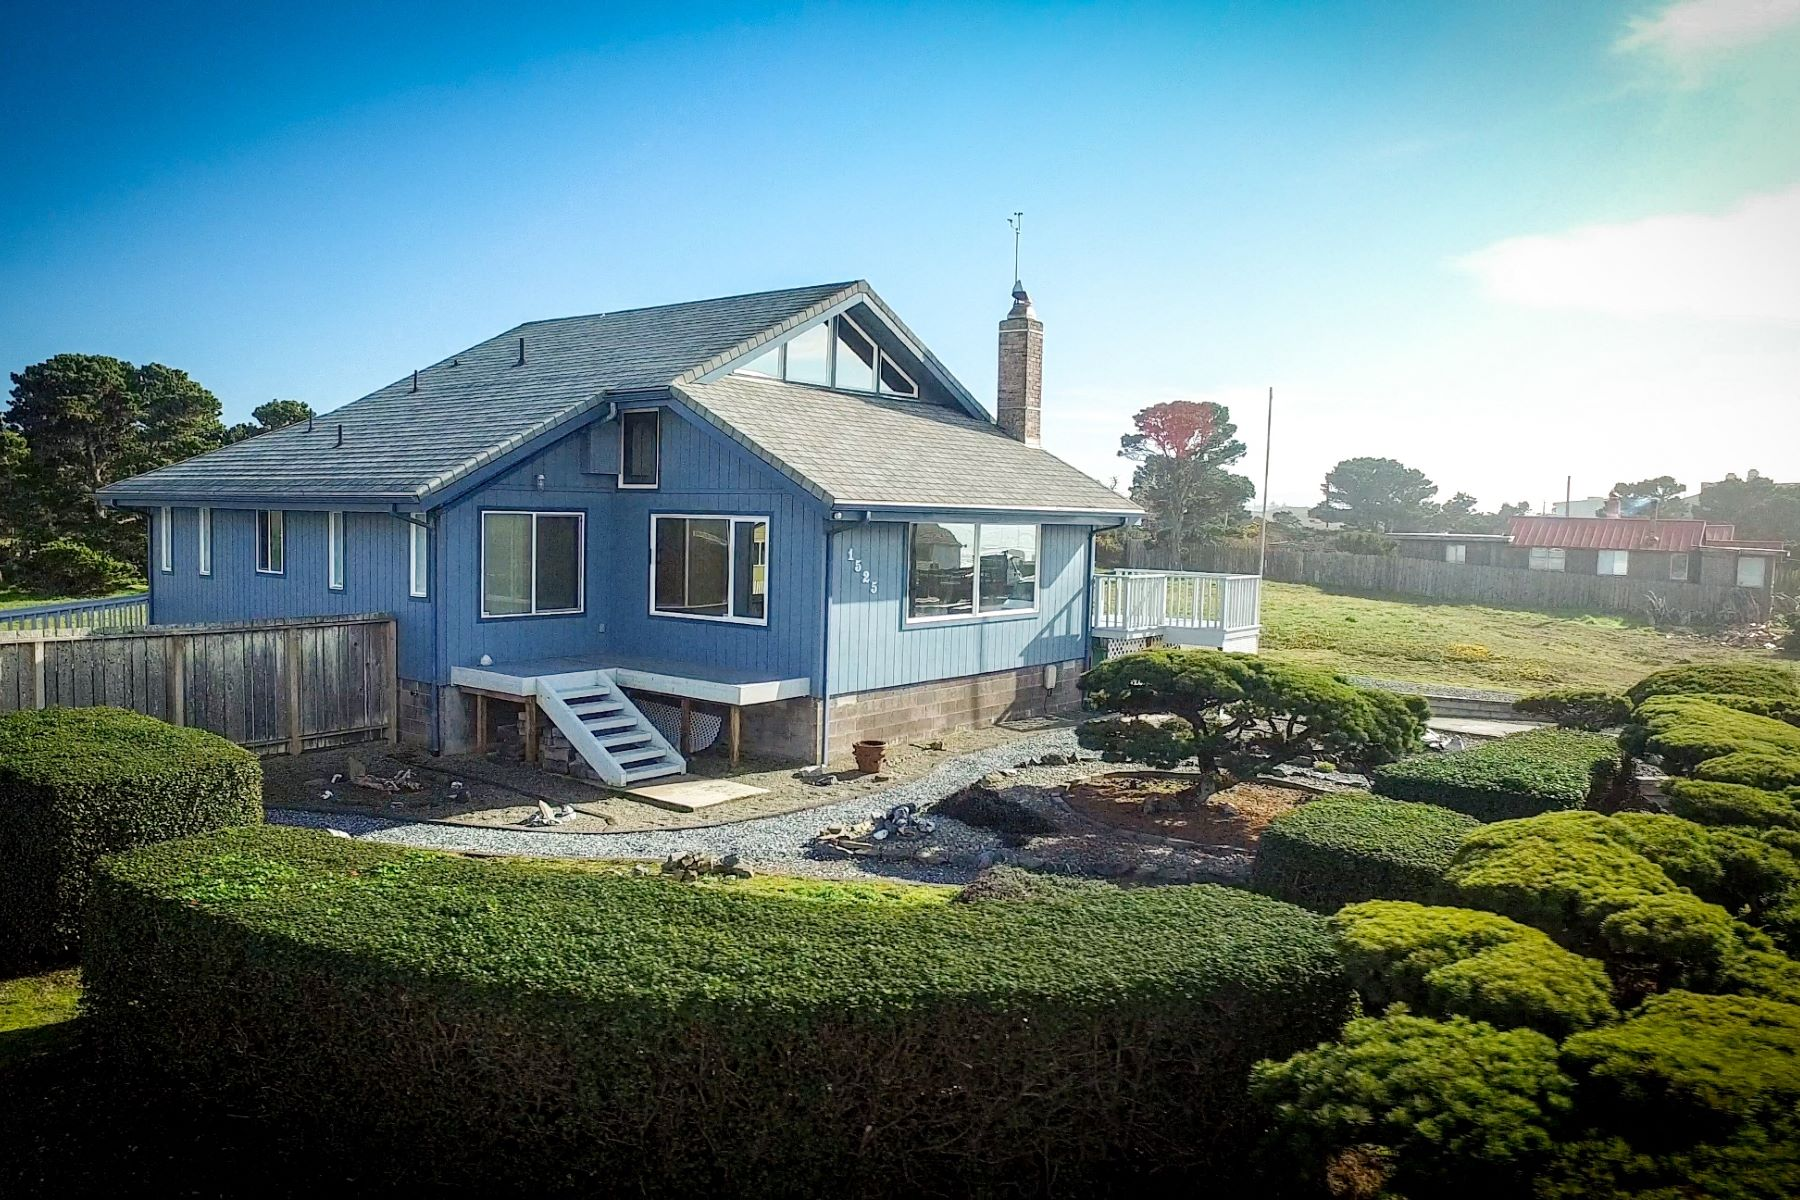 Single Family Home for Sale at Ocean View Home on Beach Loop Drive 1525 Beach Loop Road, Bandon, Oregon, 97411 United States